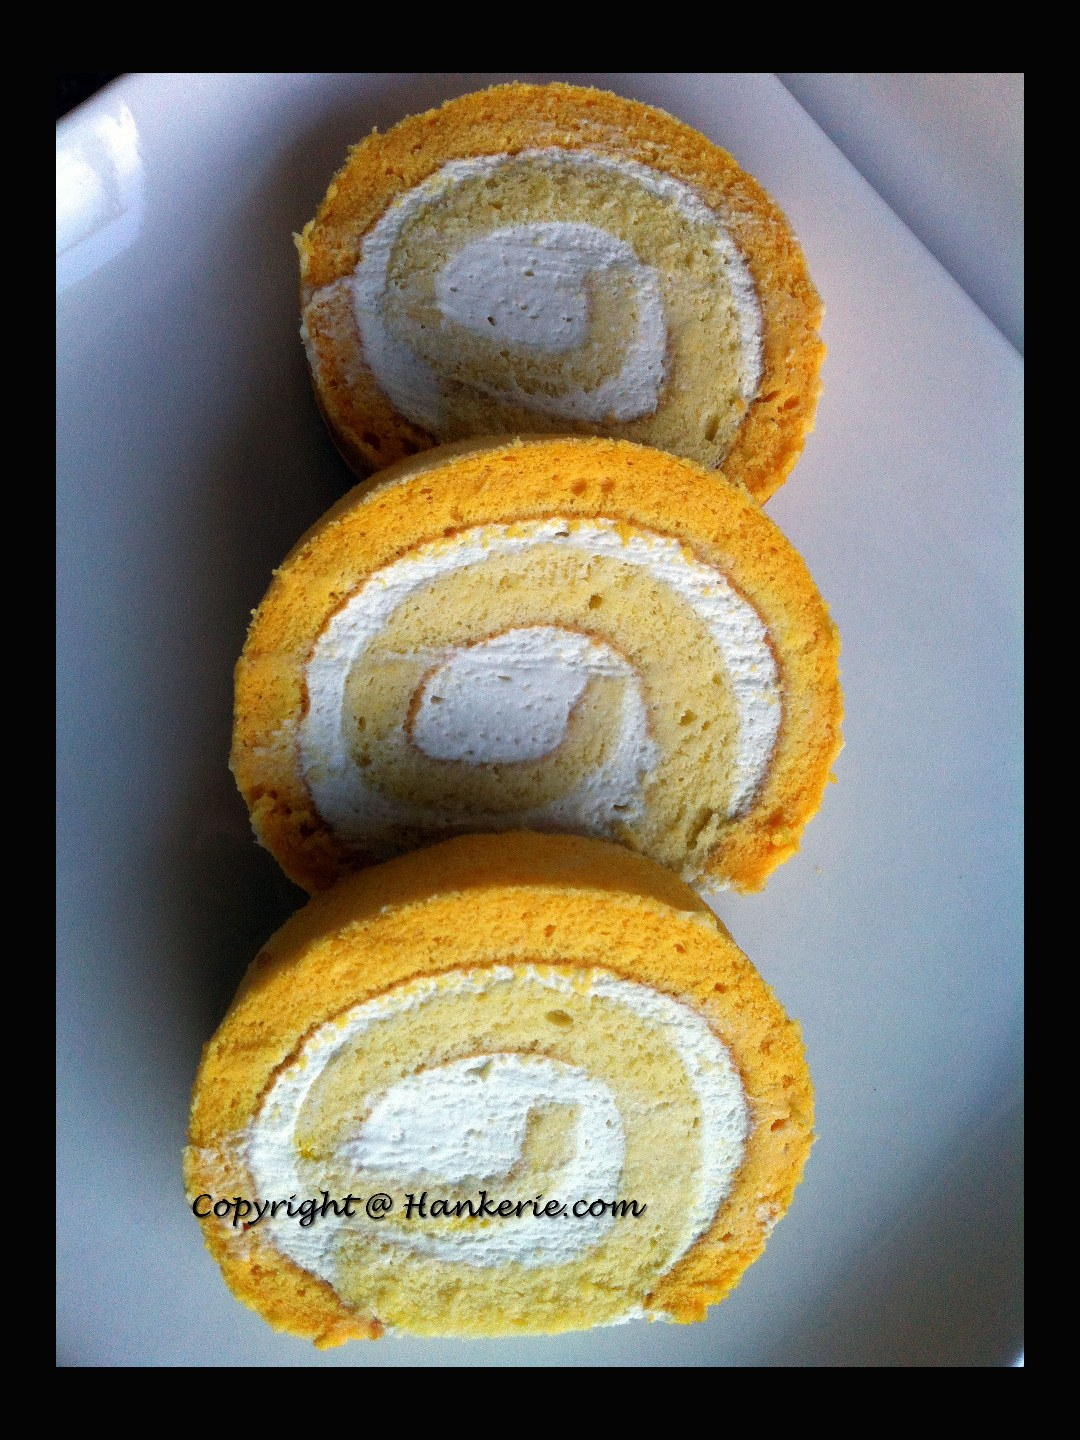 how to make chocolate swiss roll step by step